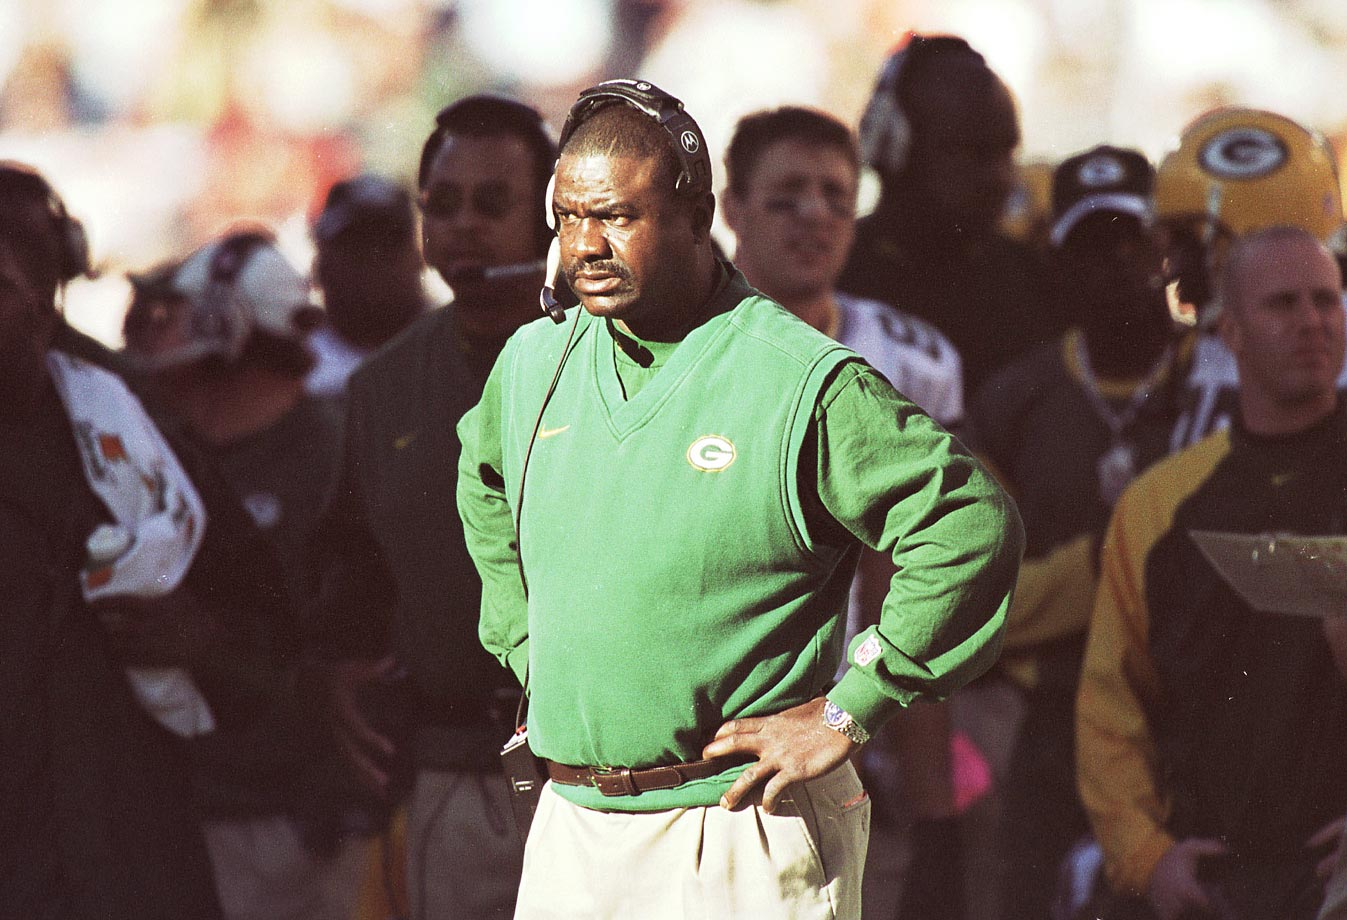 Rhodes, who directed the Eagles to two wild-card berths in 1995-96 before the club's regression in 1997-98, had the unfortunate task of following Mike Holmgren in Green Bay. In 1999, the Rhodes-led Packers finished a disappointing 8-8, prompting his dismissal after one season and ushering in the Mike Sherman era, where Green Bay captured four straight division titles from 2001 to '04. Unfortunately for Rhodes, the '99 season would be his last as an NFL head coach.